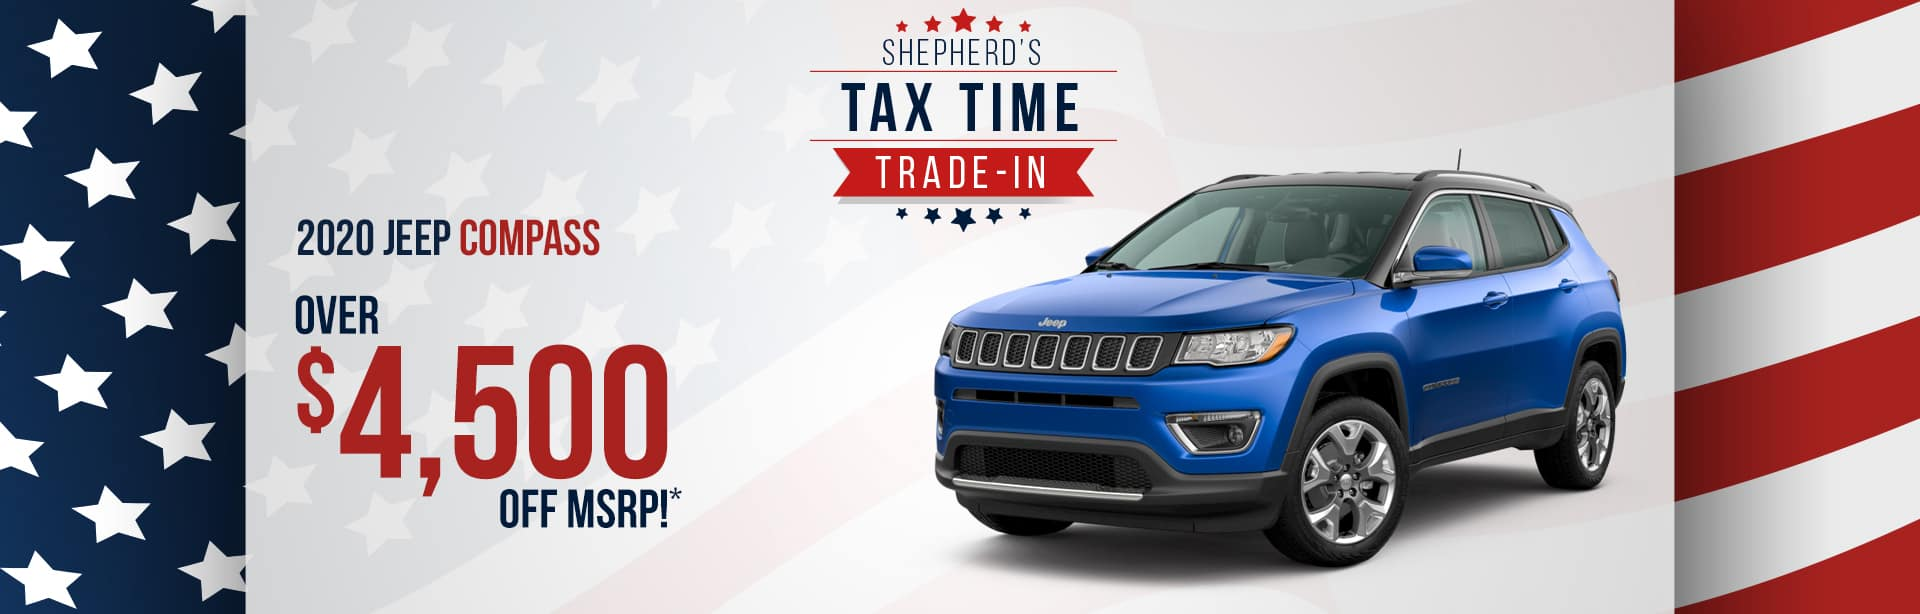 Save up to $4,500 on a New Jeep Compass near Fort Wayne, Indiana